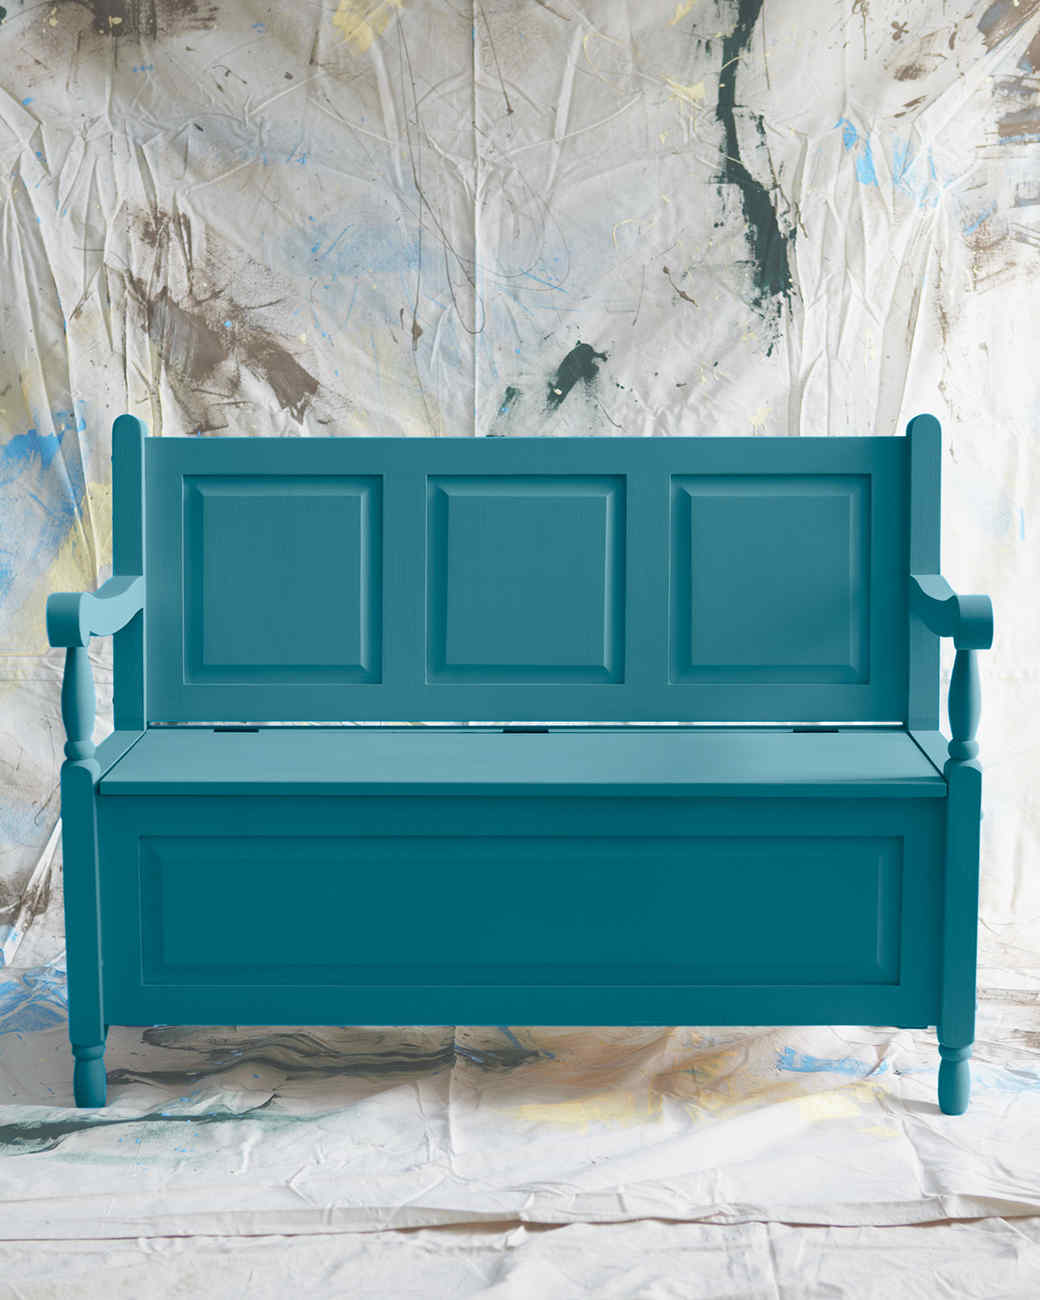 Customizing Unfinished Furniture | Martha Stewart